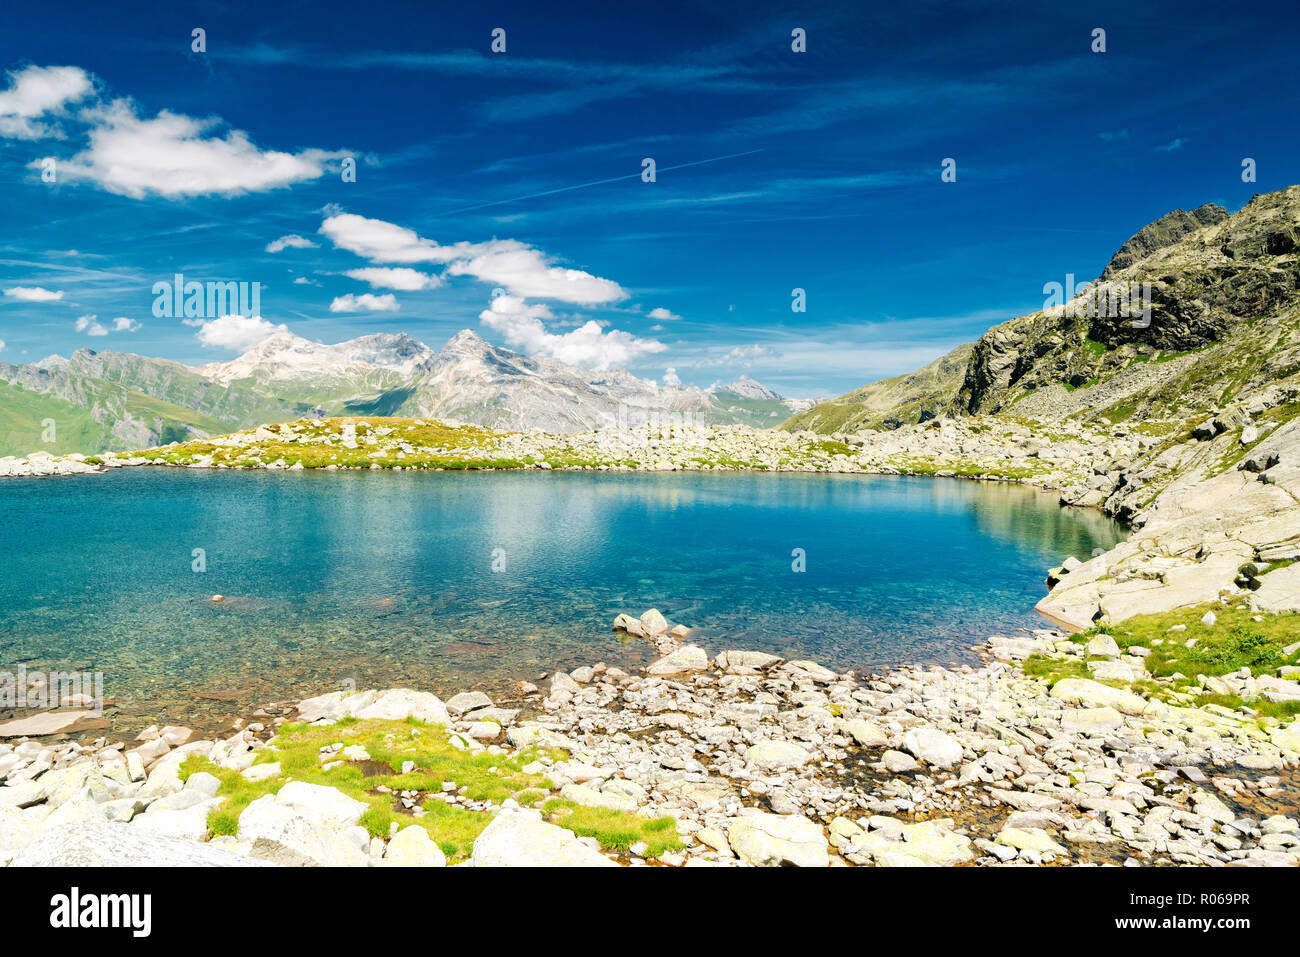 Turquoise crystalline water of lake Bergsee, Spluga Pass, canton of Graubunden, Switzerland, Europe - Stock Image